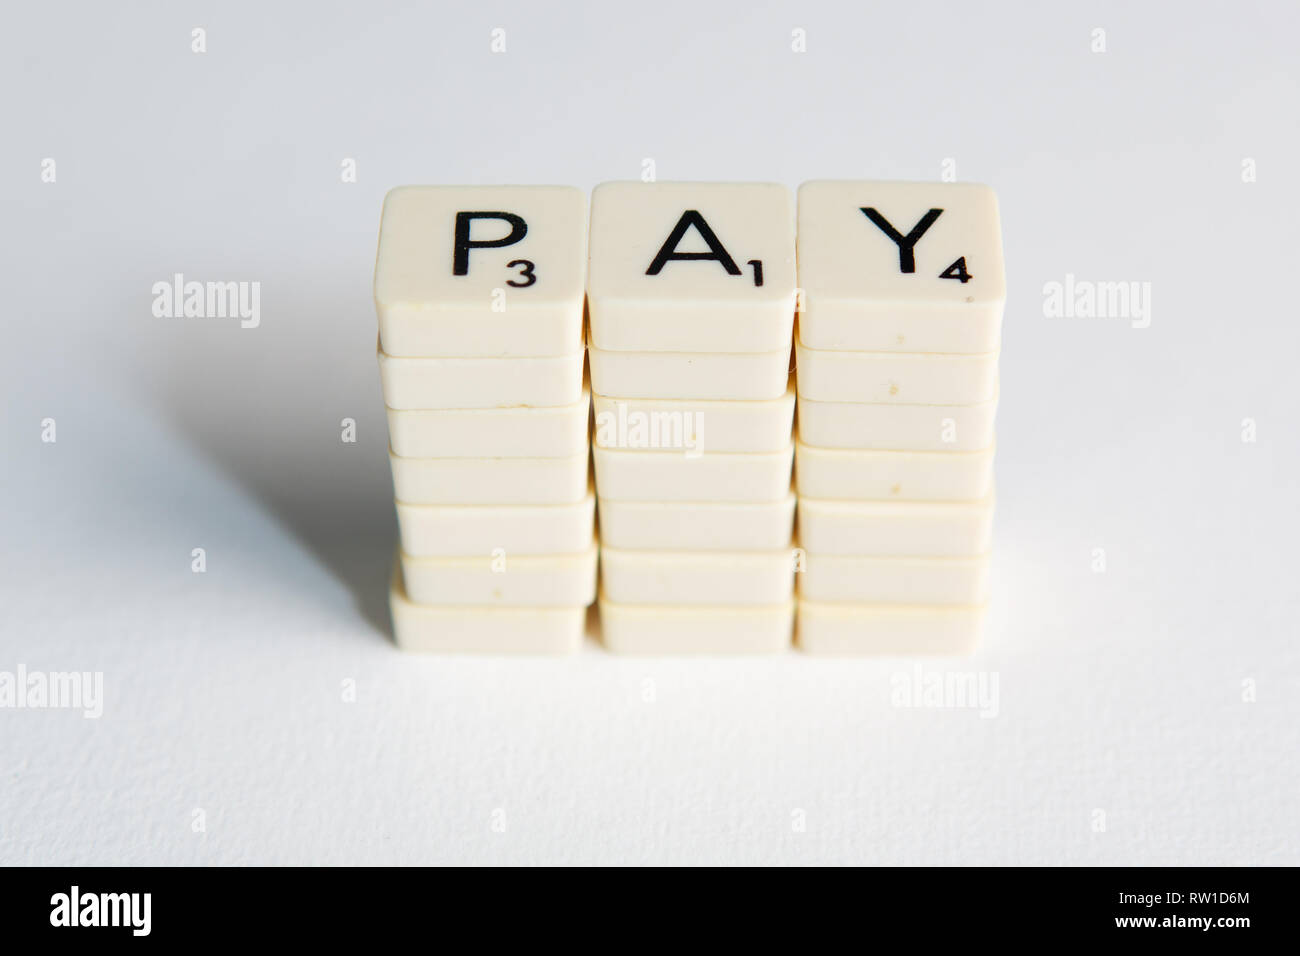 Tiles spell out the word 'pay' symbolizing a pay rise Stock Photo